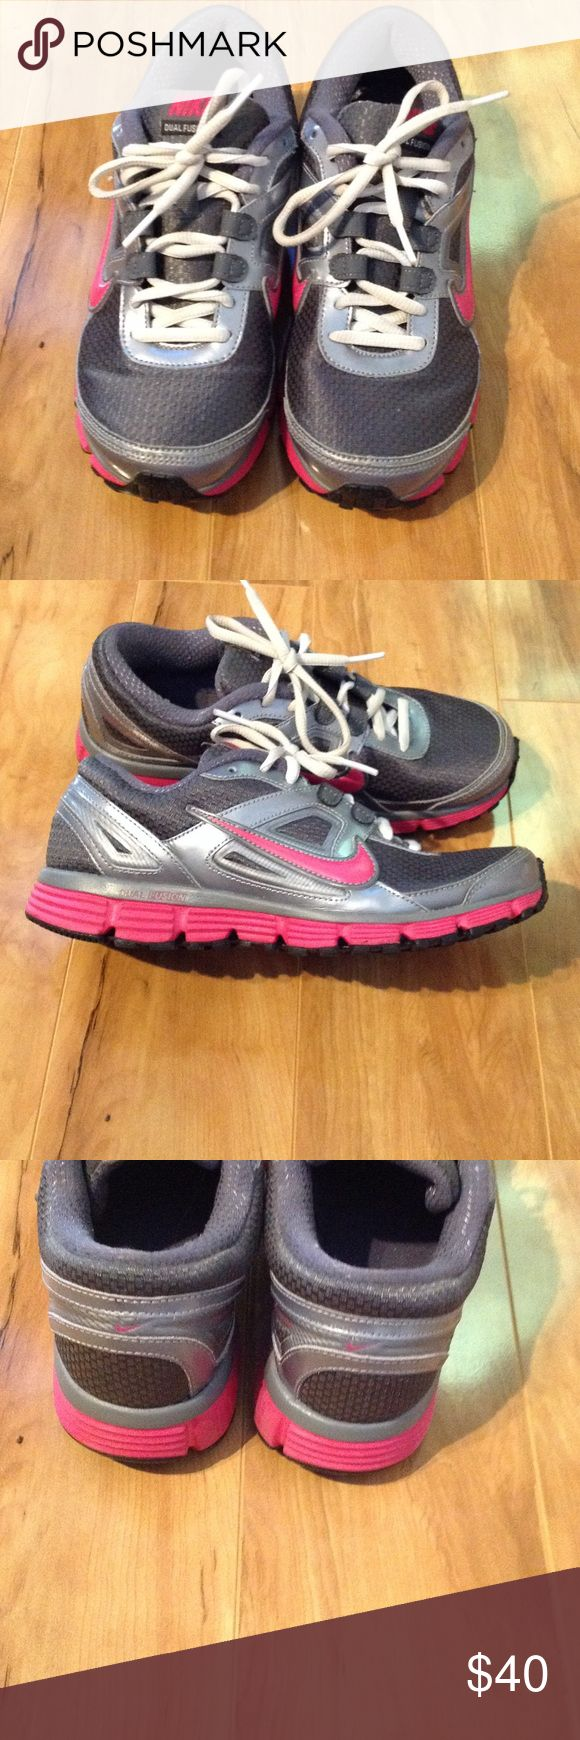 Nike dual fusion st sneakers Nike dual fusion sneakers. Pink, silver and grey.  Size 7.5. Only worn indoors and to and from car. Nike Shoes Athletic Shoes